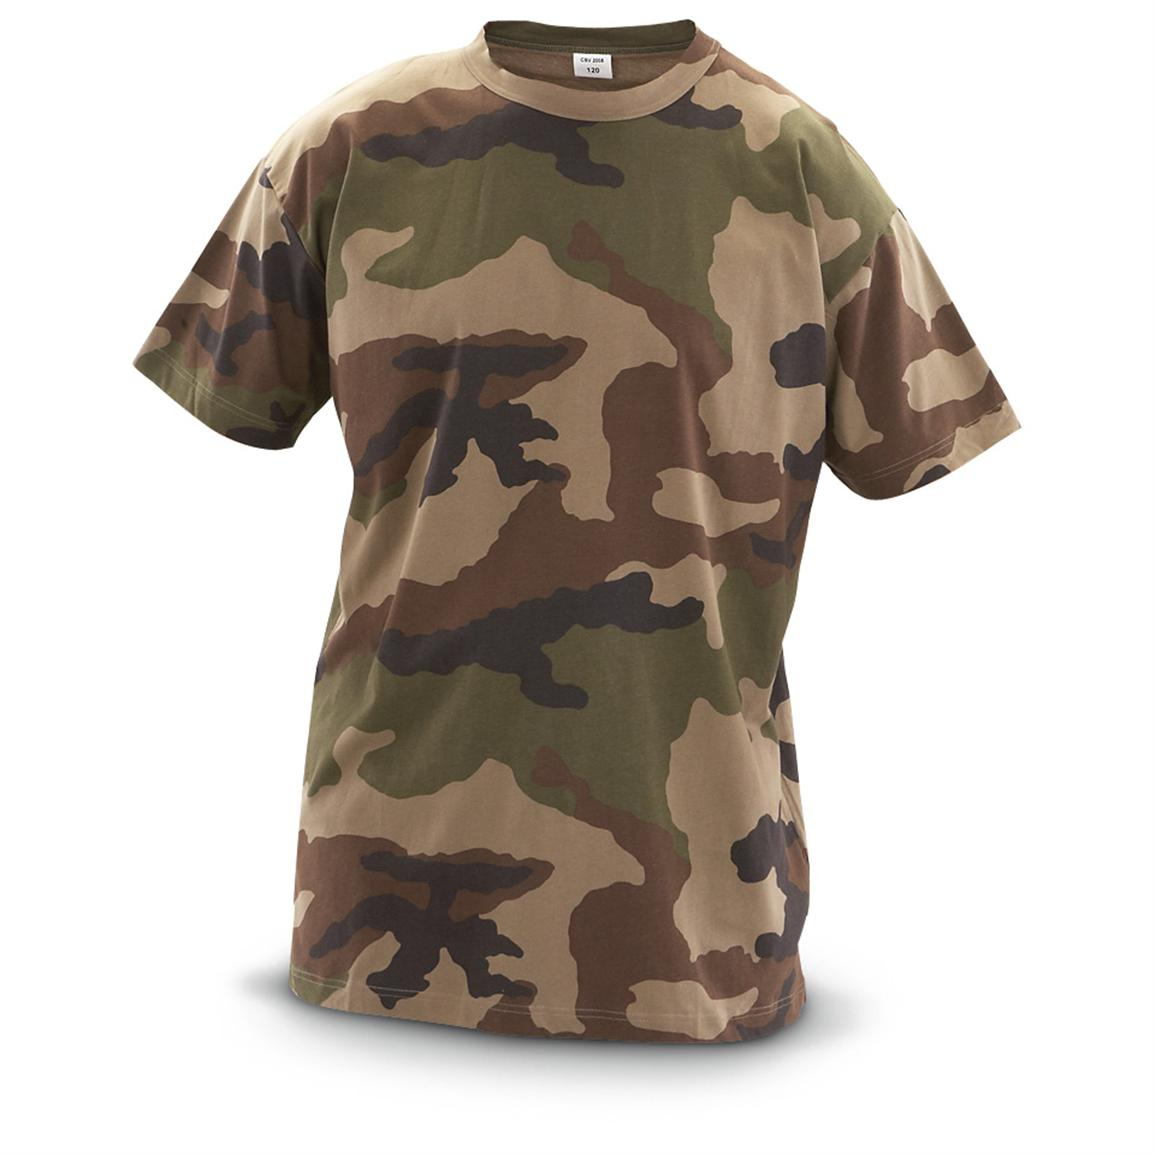 3 New French Military Surplus T-shirts, CCE camo